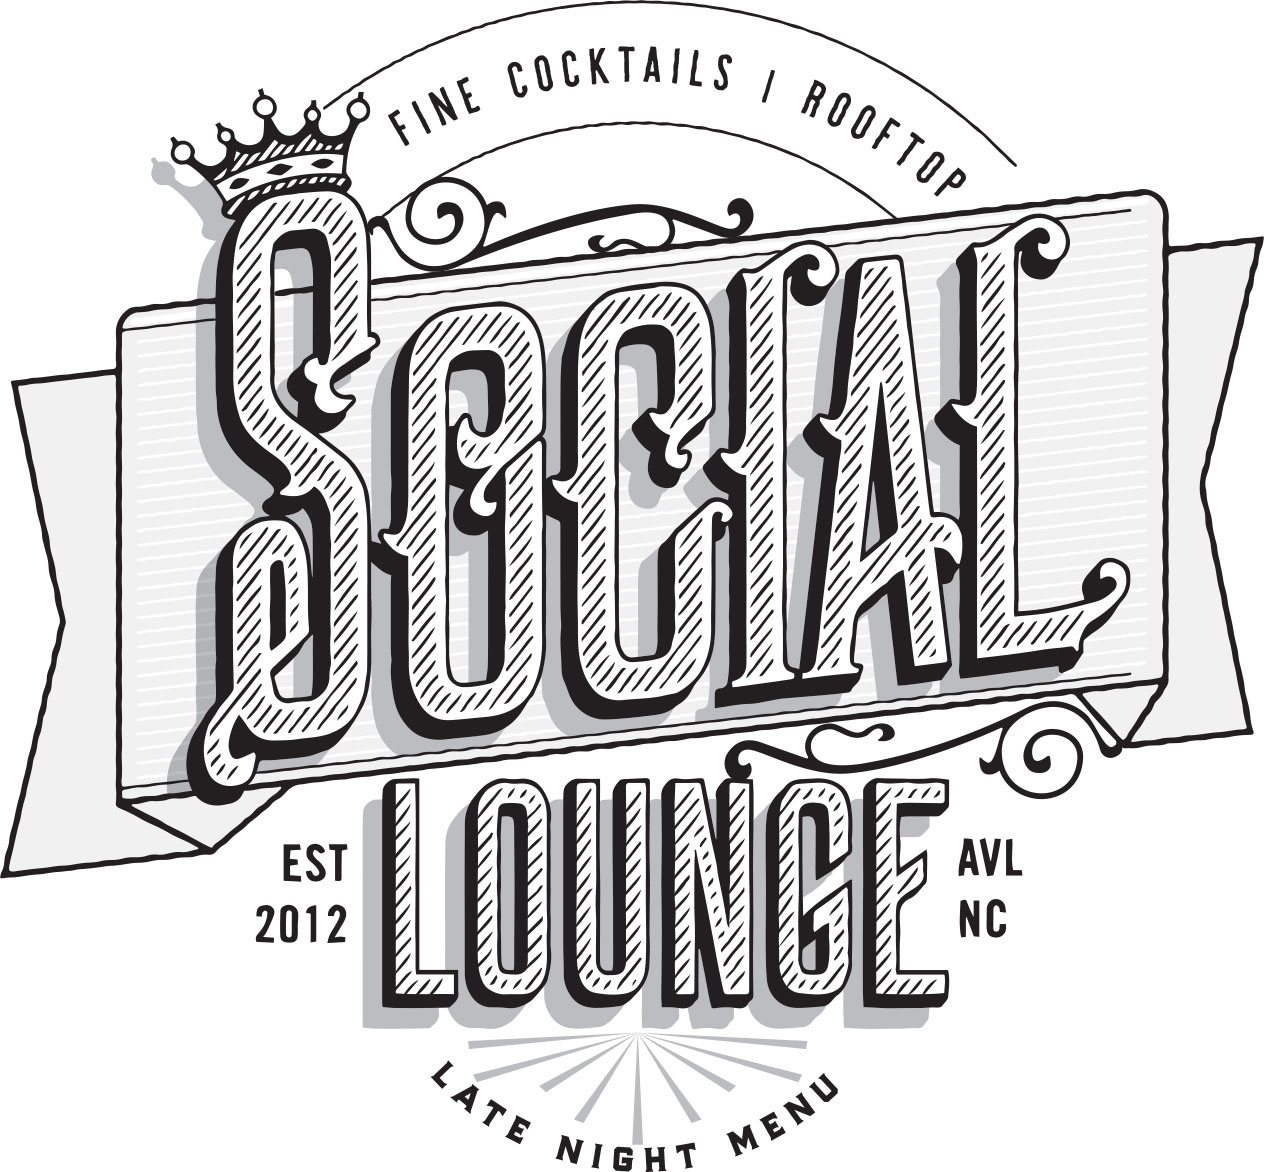 The Social Lounge